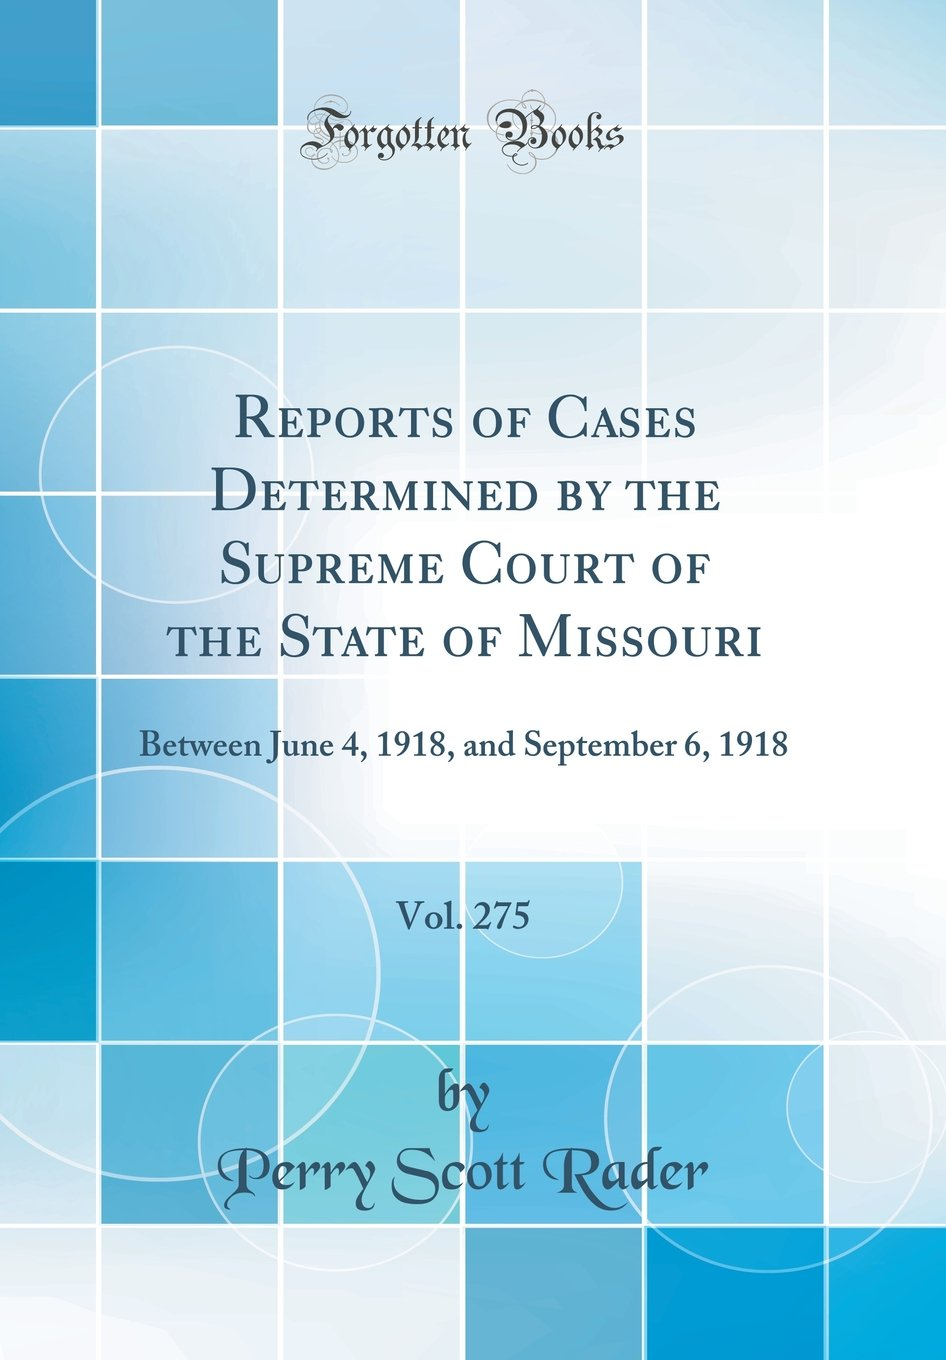 Reports of Cases Determined by the Supreme Court of the State of Missouri, Vol. 275: Between June 4, 1918, and September 6, 1918 (Classic Reprint) pdf